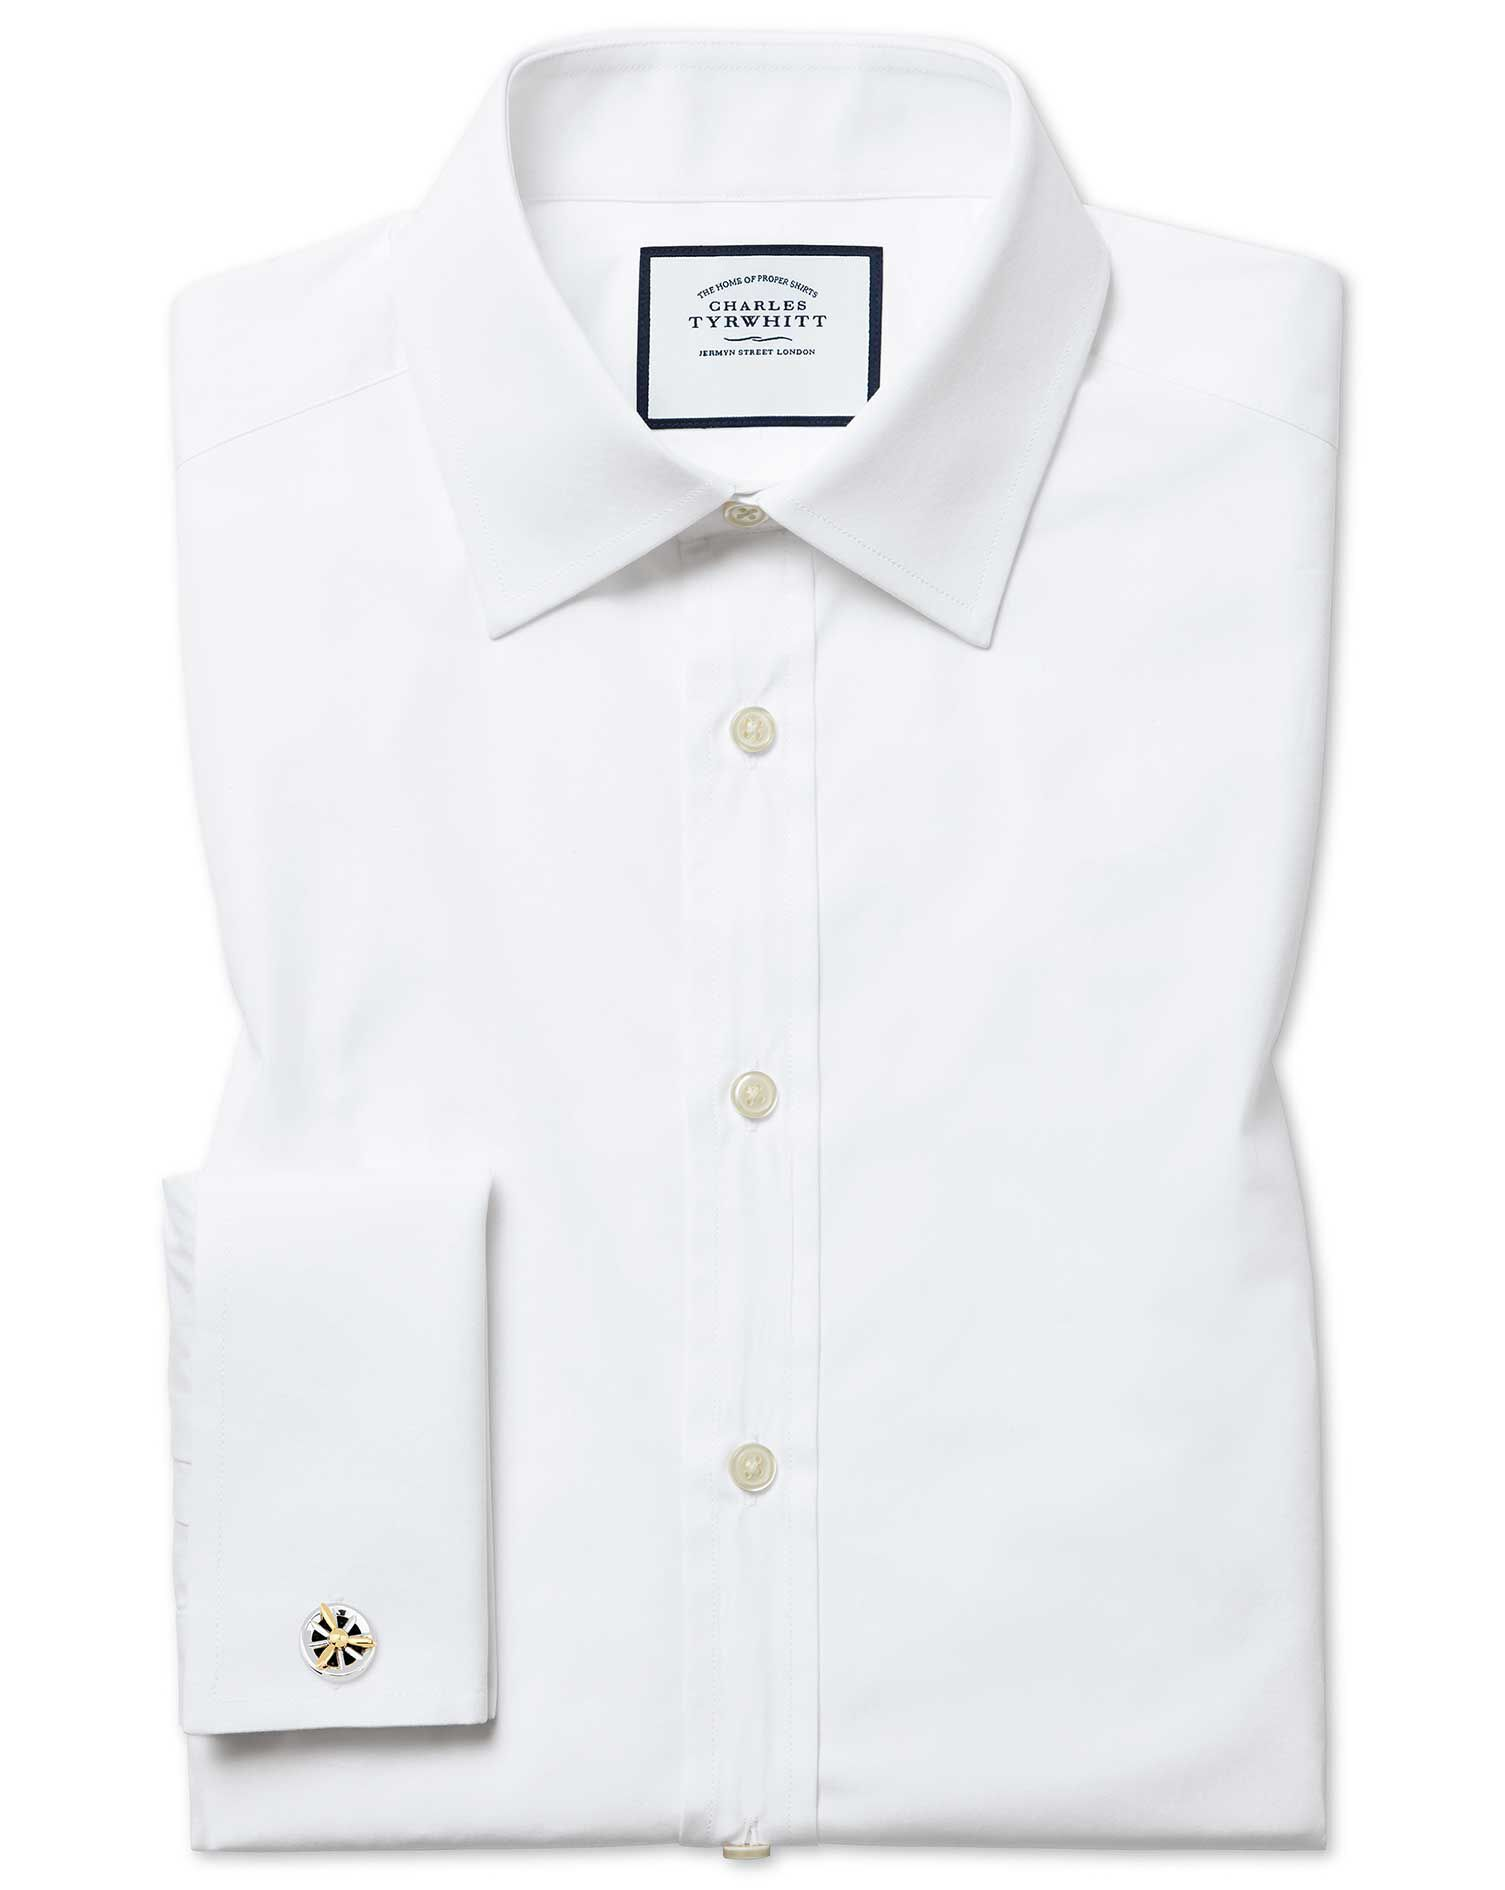 Classic Fit Egyptian Cotton Poplin White Formal Shirt Single Cuff Size 18/37 by Charles Tyrwhitt